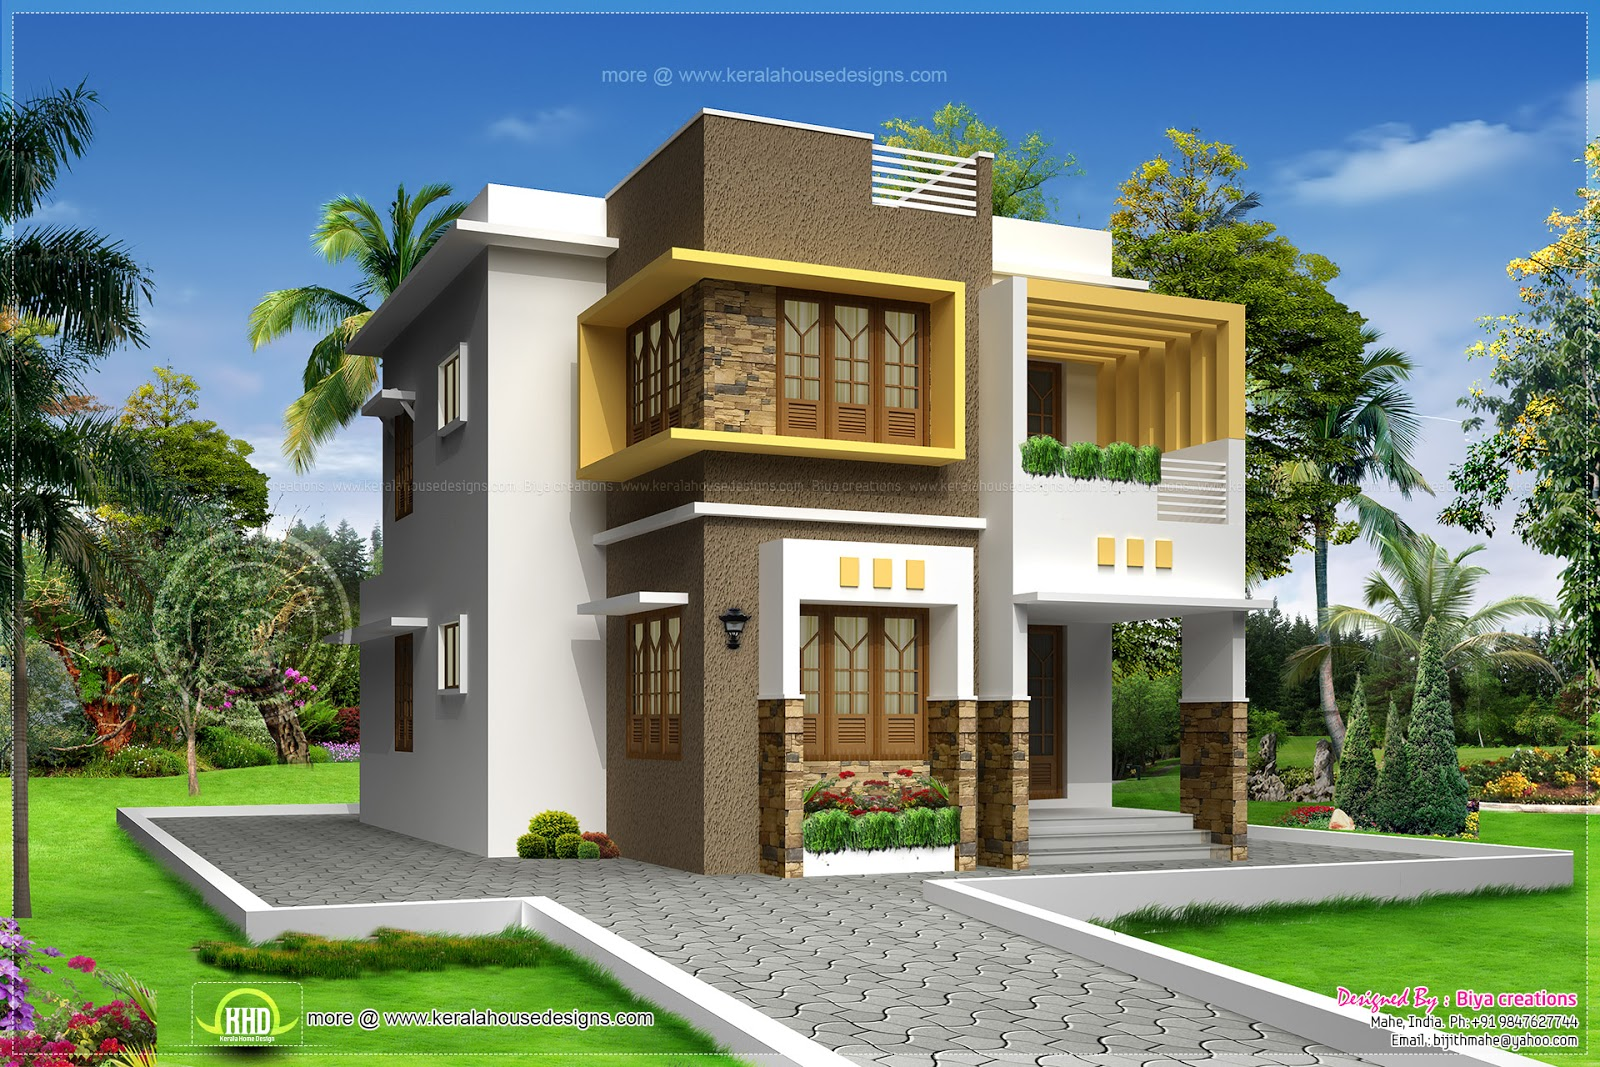 Pics photos home villa contemporary bungalow design with rustic - Small Double Storied Contemporary House Design Kerala